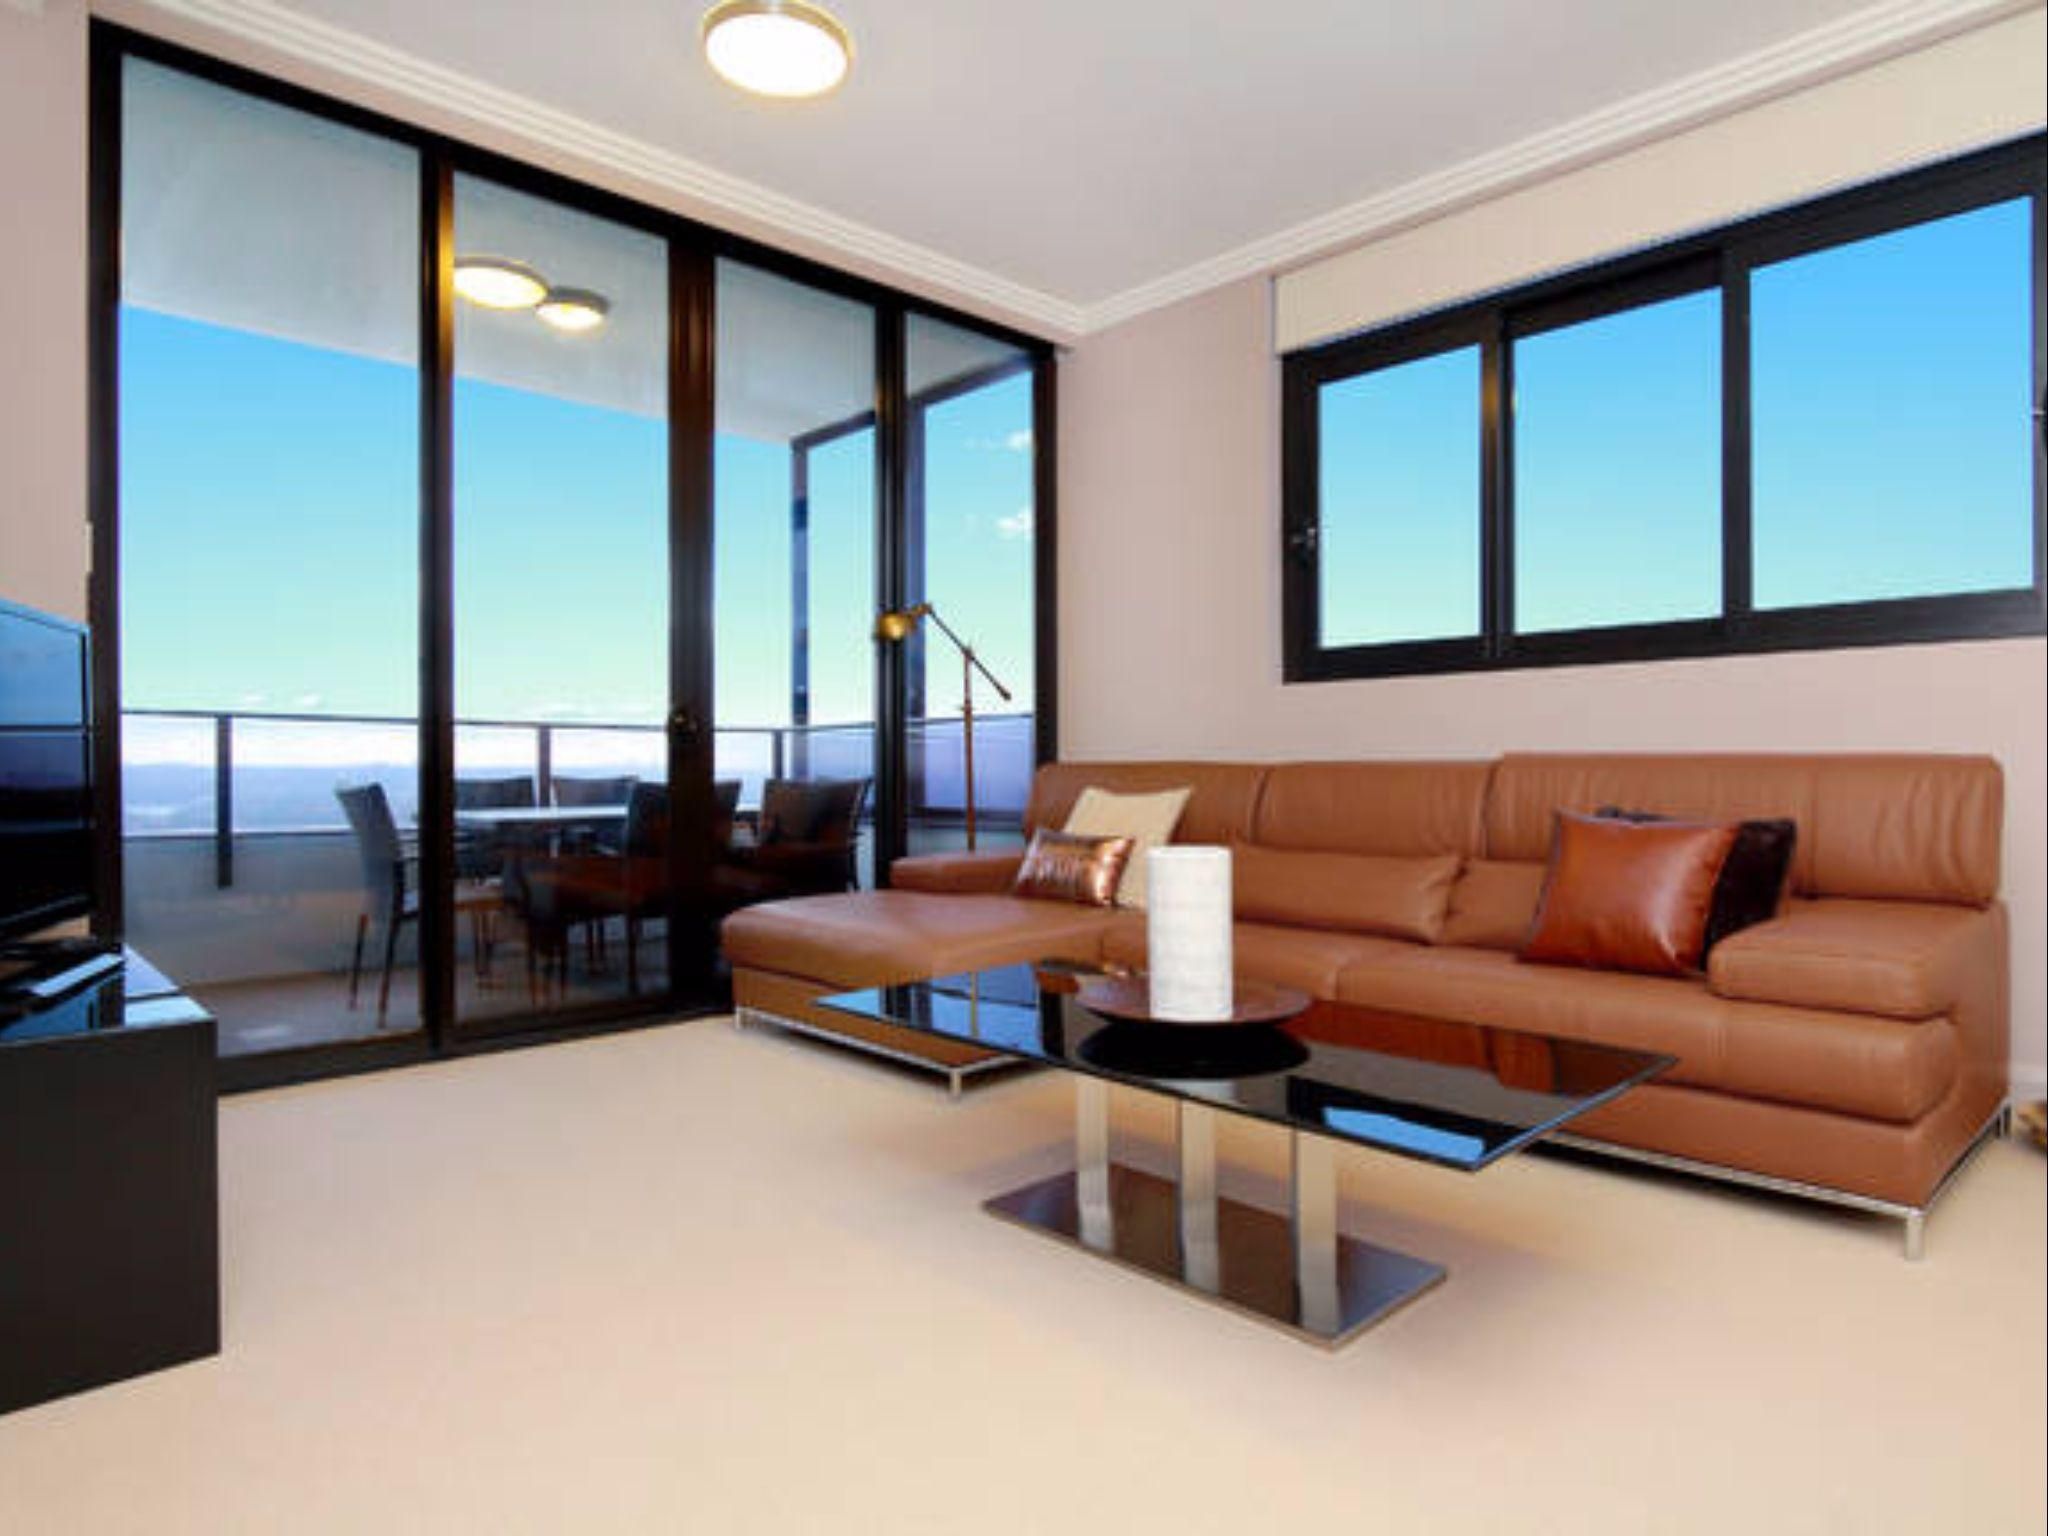 3 Bedroom With City View